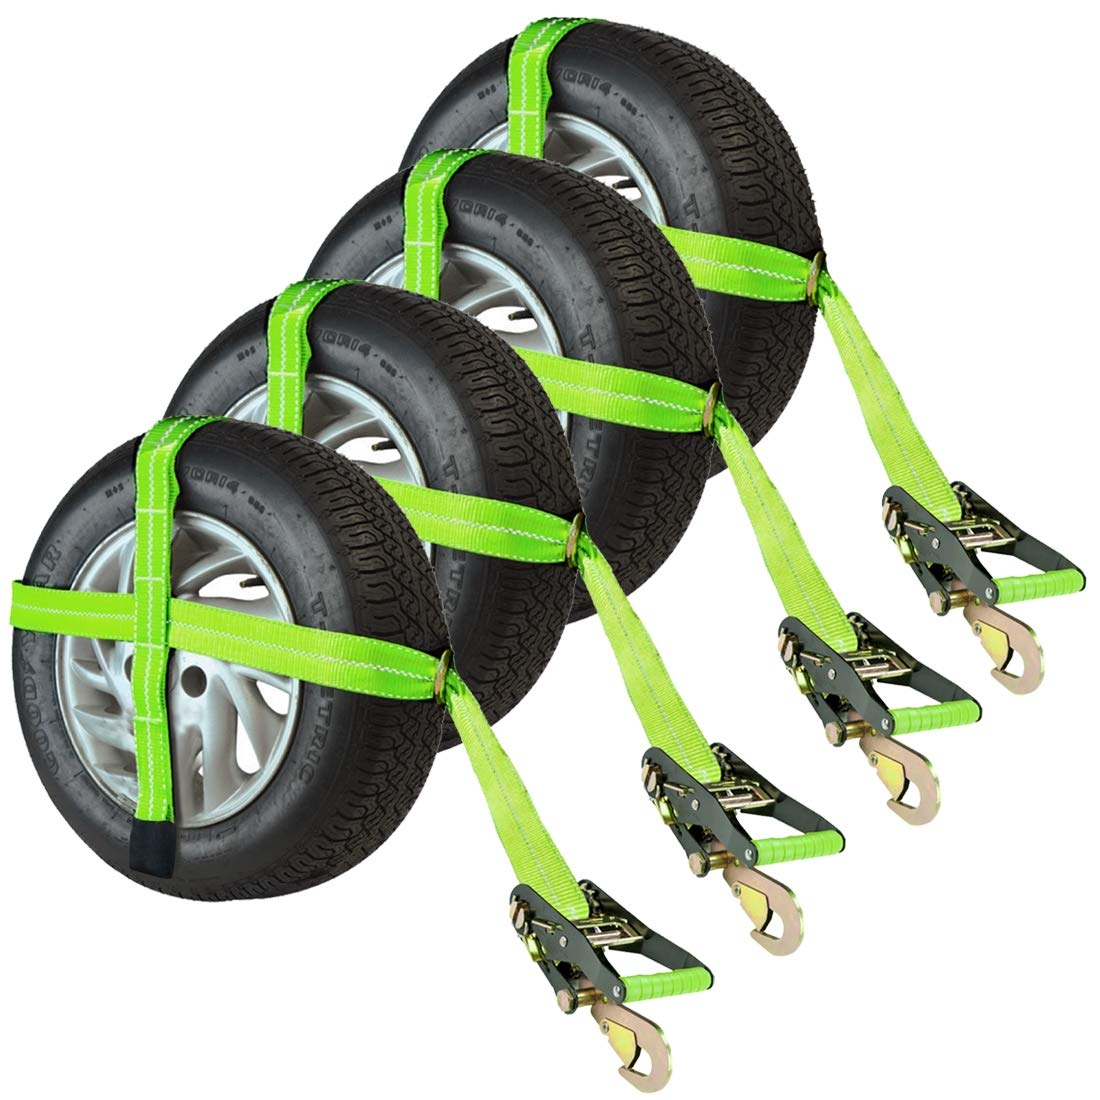 Vulcan Adjustable Loop Car Tie Down Kit With Snap Hooks Downs Automotive Wiring Harness Complete Includes 4 Straps And Ratchets Hi Viz Green Home Improvement